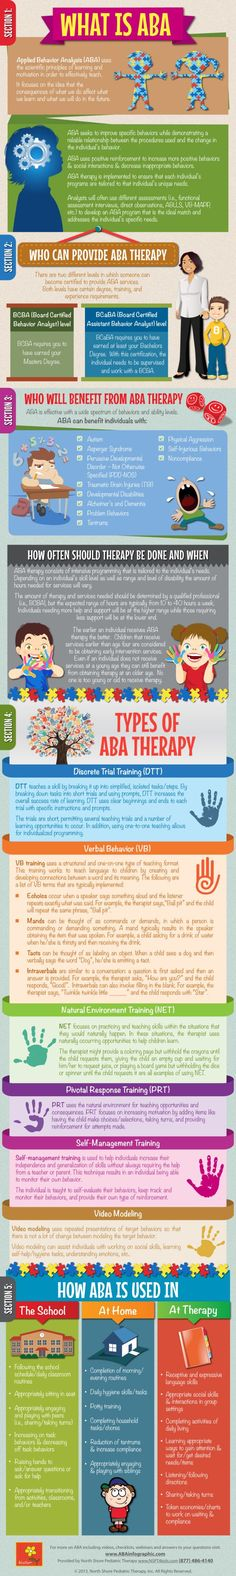 APPLIED BEHAVIOR ANALYSIS - repinned by @PediaStaff – Please Visit ht.ly/63sNt for all our ped therapy, school & special ed pins